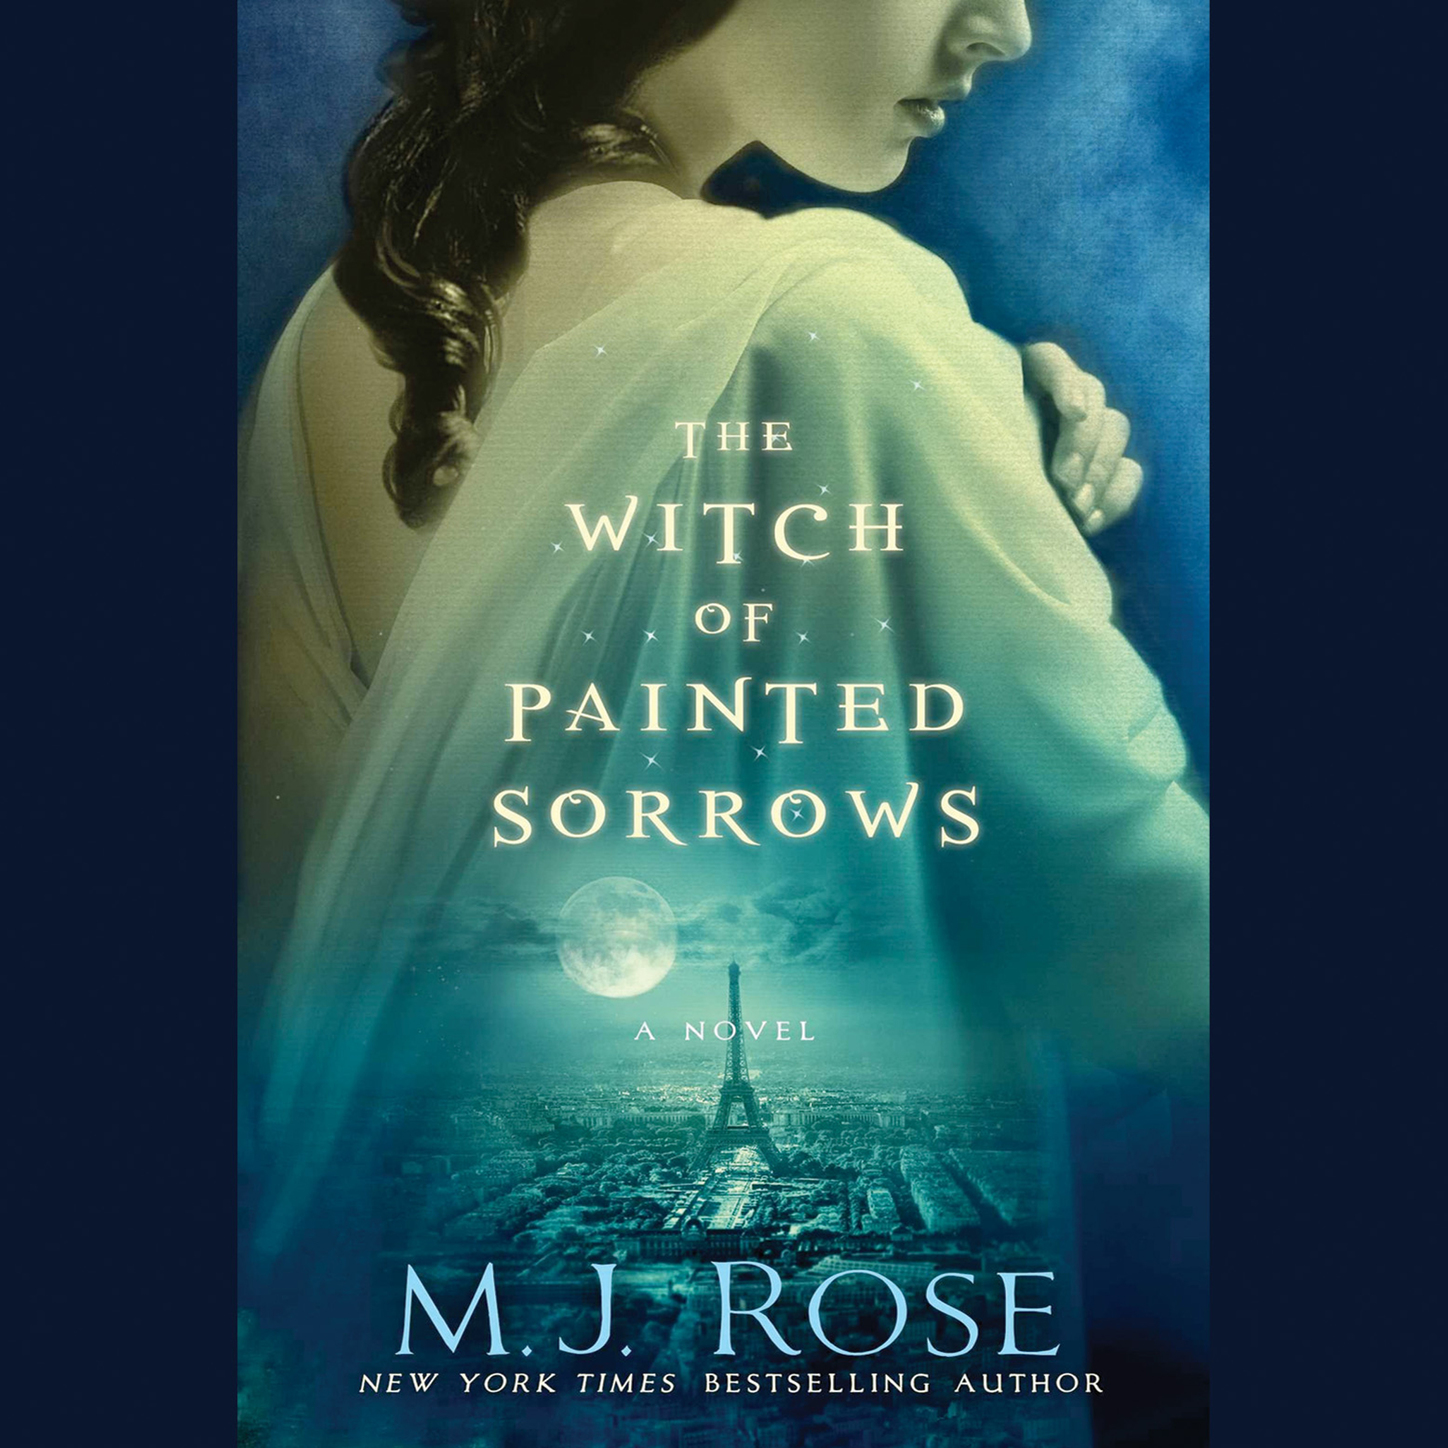 M. J. Rose The Witch of Painted Sorrows - The Daughters of La Lune 1 (Unabridged) 28220 disciple of the witch one